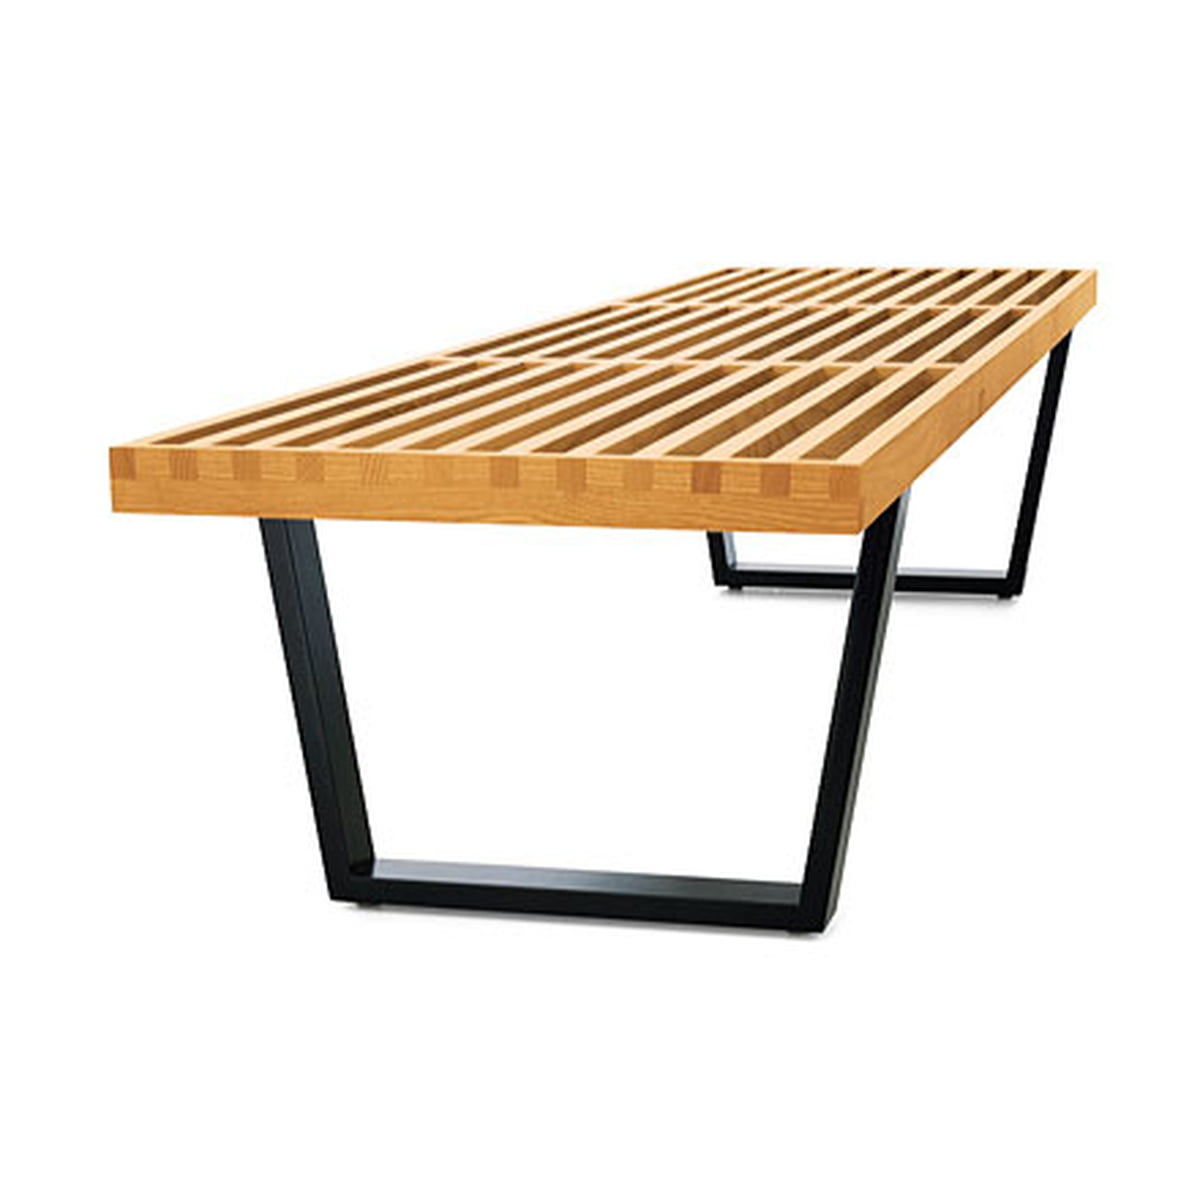 Marvelous Vitra Nelson Bench 353 X 1220 X 469 Mm Andrewgaddart Wooden Chair Designs For Living Room Andrewgaddartcom